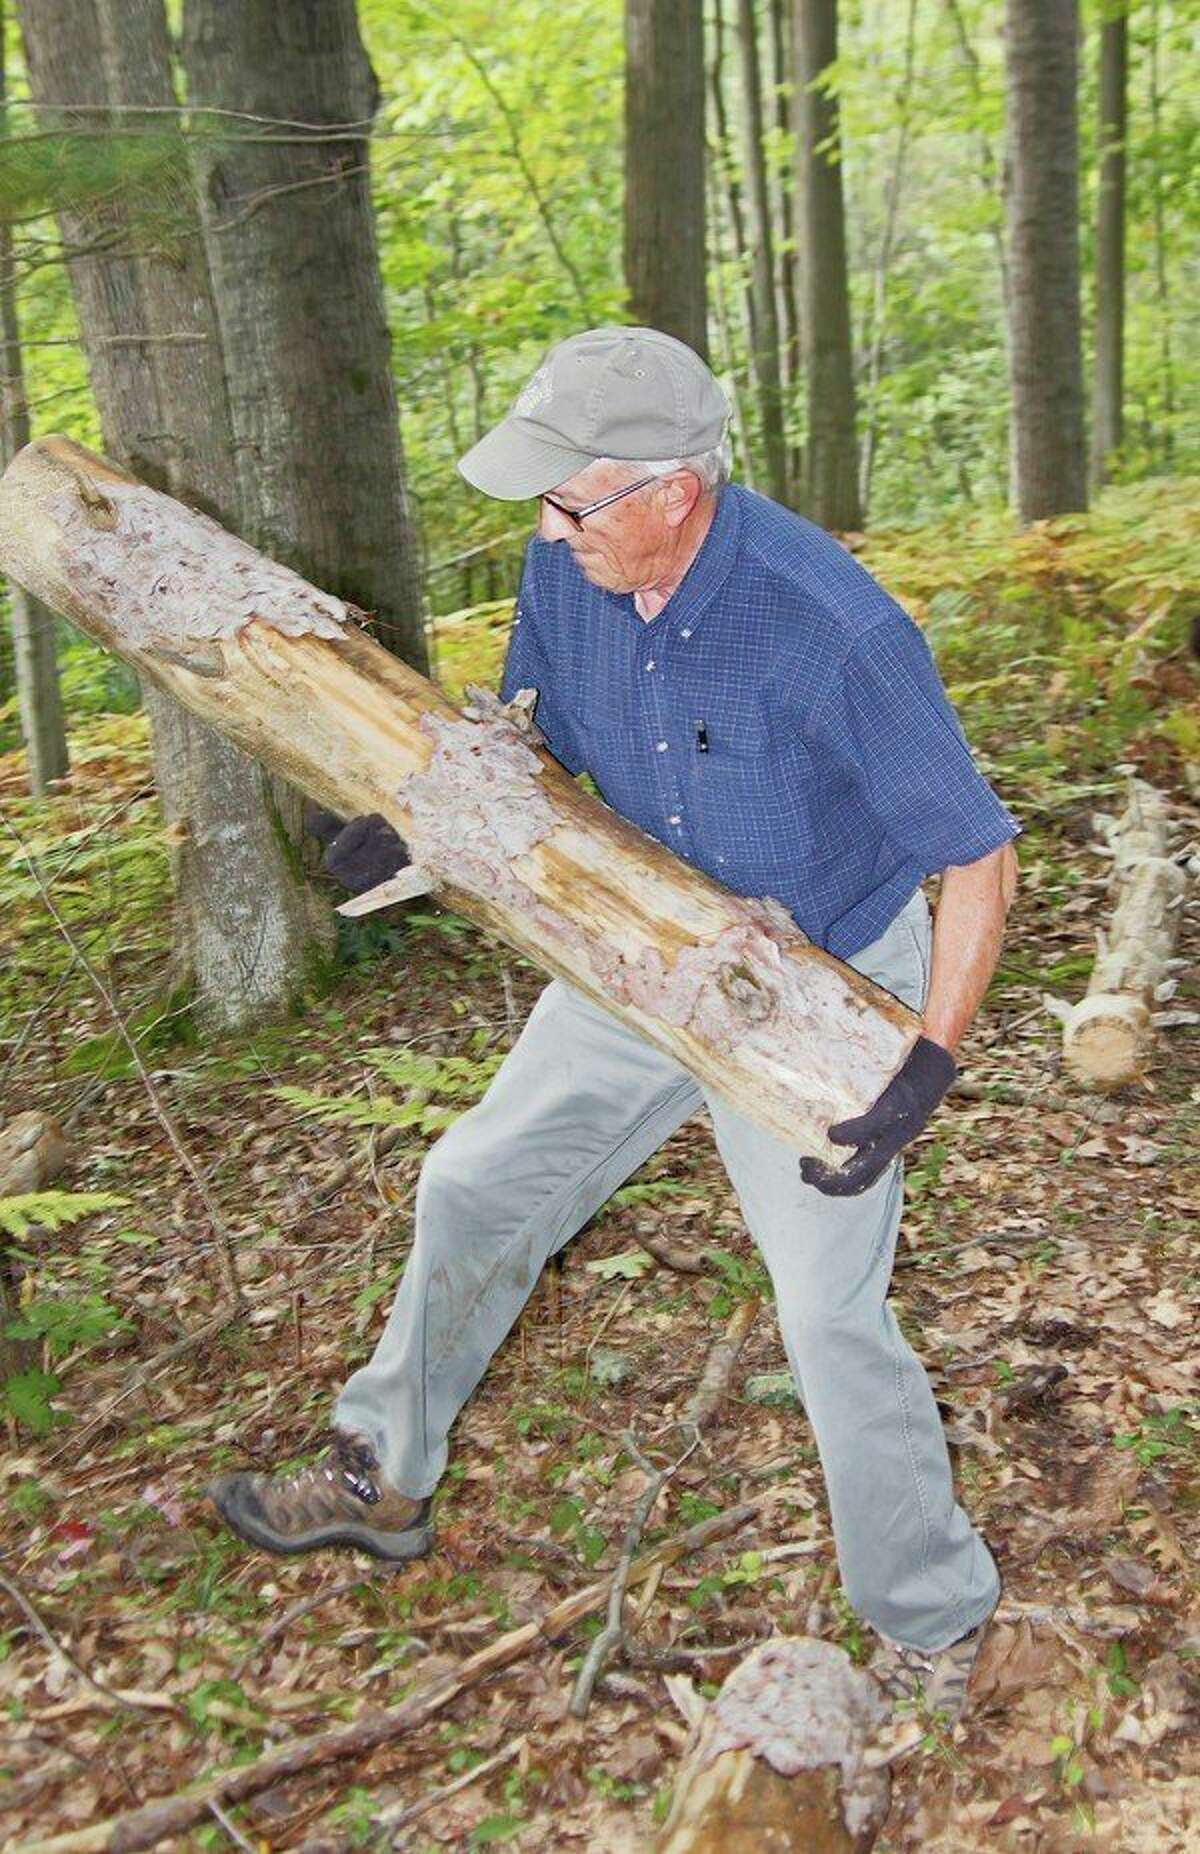 Nature center board member, Tom Beachy, helps clear fallen logs from the new trail system at the Huron County Nature Center. (Bill Diller/For the Tribune)